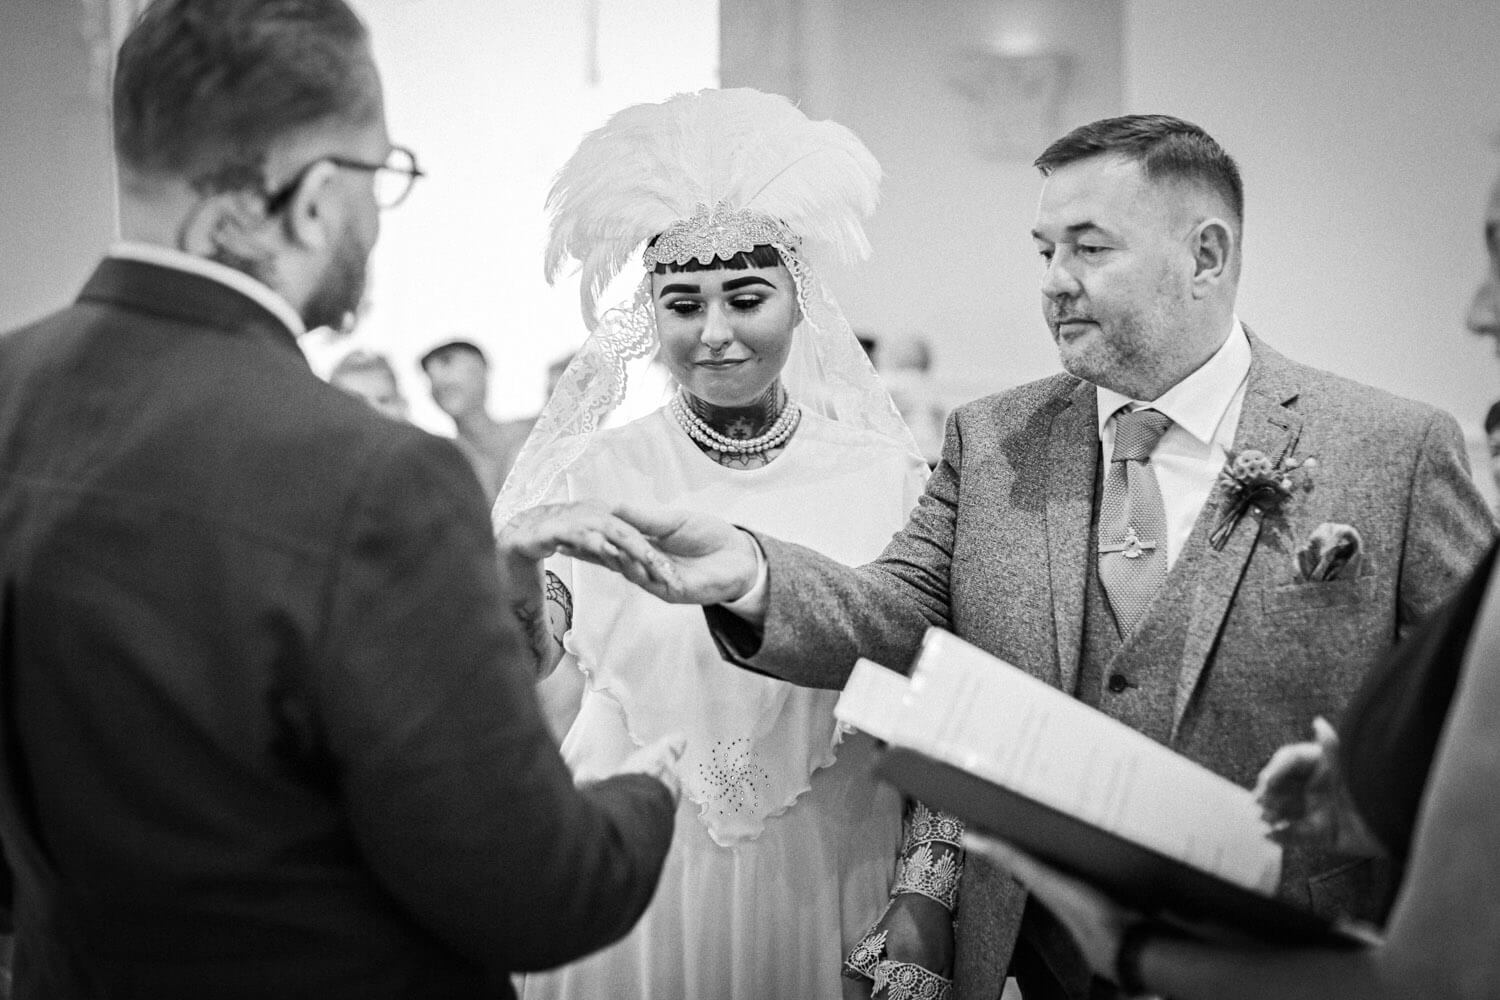 Father of vintage bride giving her away